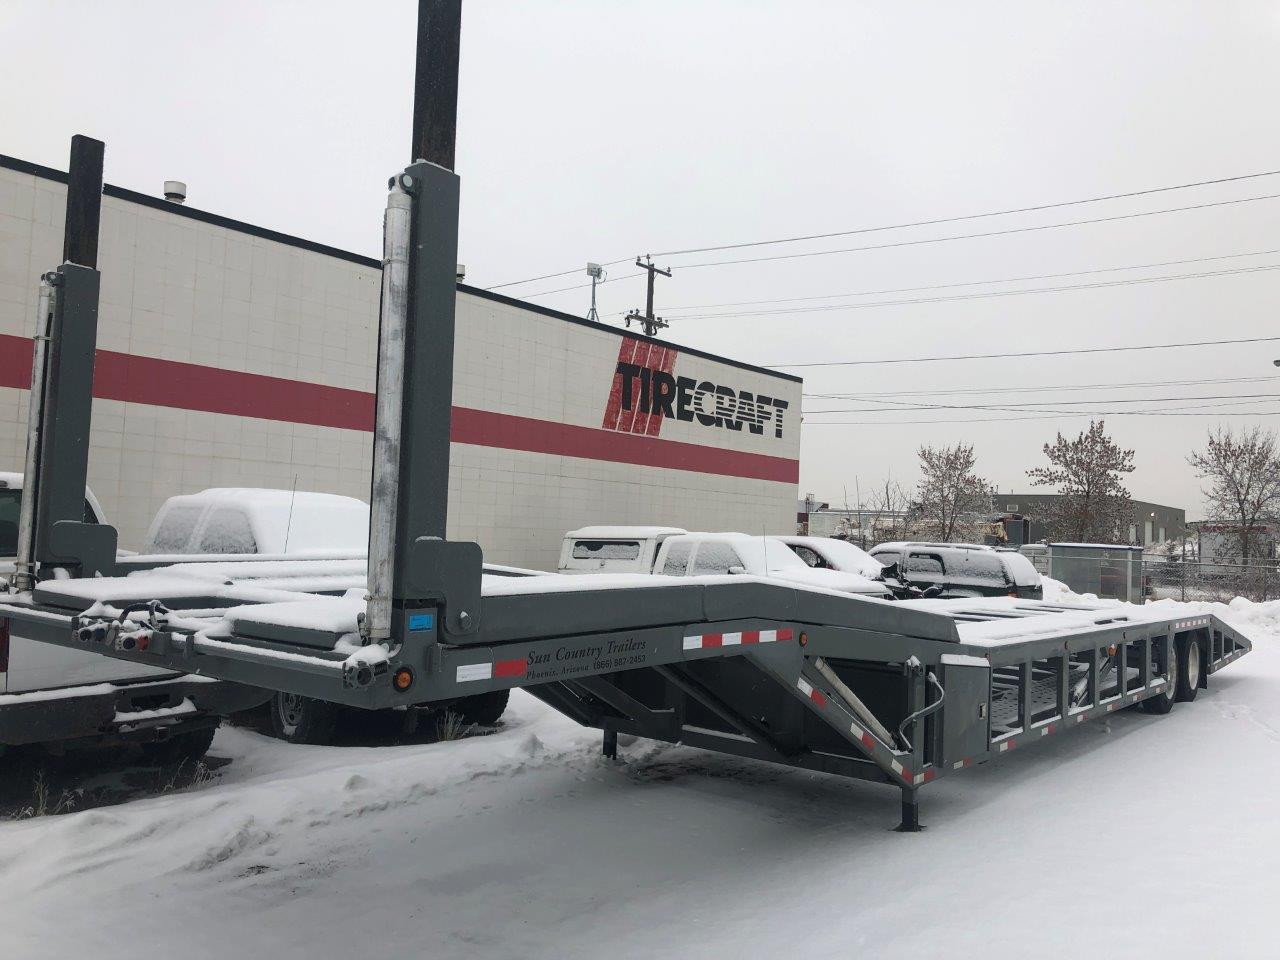 2019 SUN COUNTRY 53′ CAR HAULER STOCK# 2288